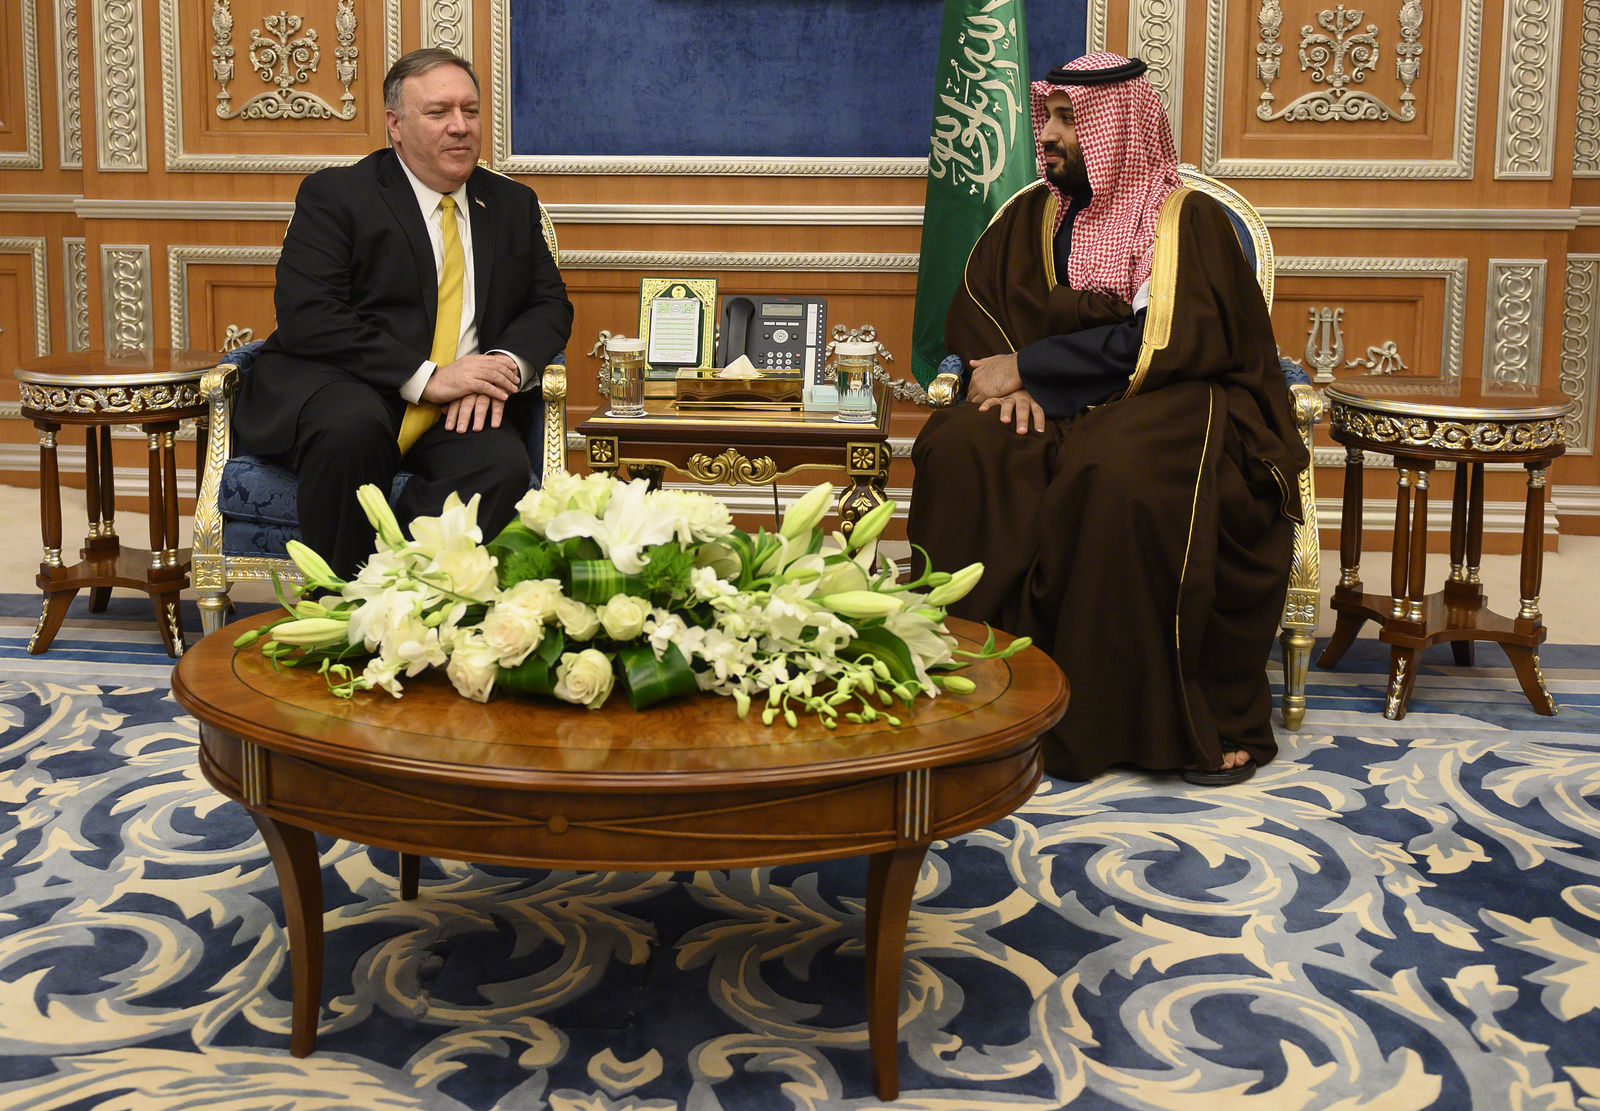 Saudi Crown Prince Mohammed bin Salman, right meets with U.S. Secretary of State Mike Pompeo at the Royal Court, in Riyadh, Monday, January 14, 2019.{ } (Andrew Cabellero-Reynolds/Pool via AP)